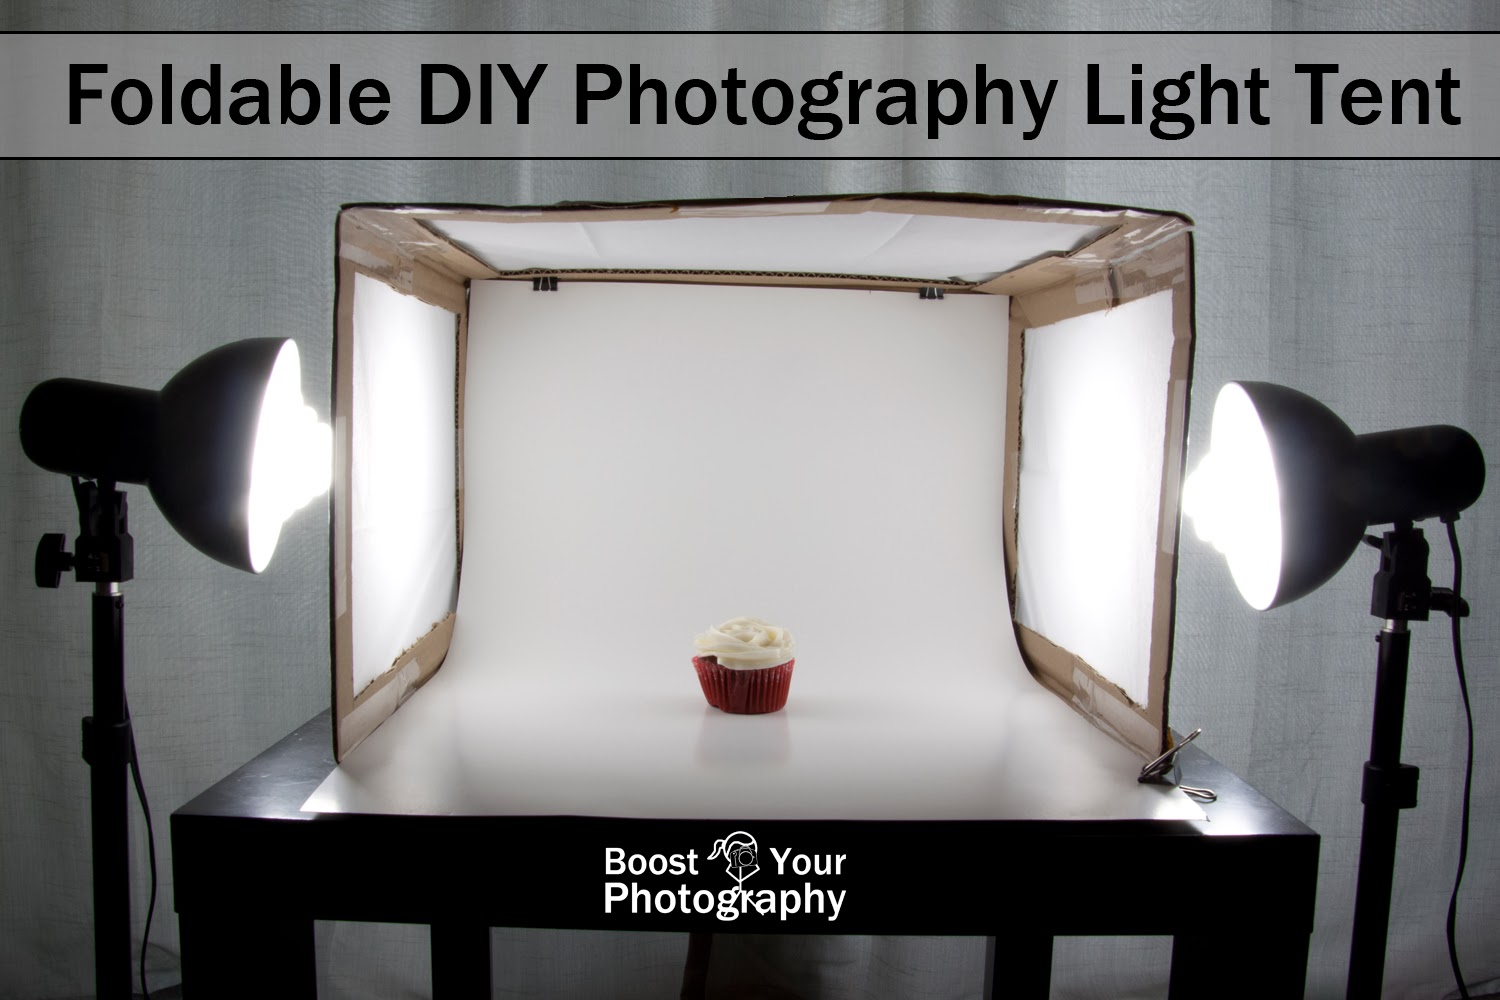 Foldable DIY Photography Light Tent Boost Your